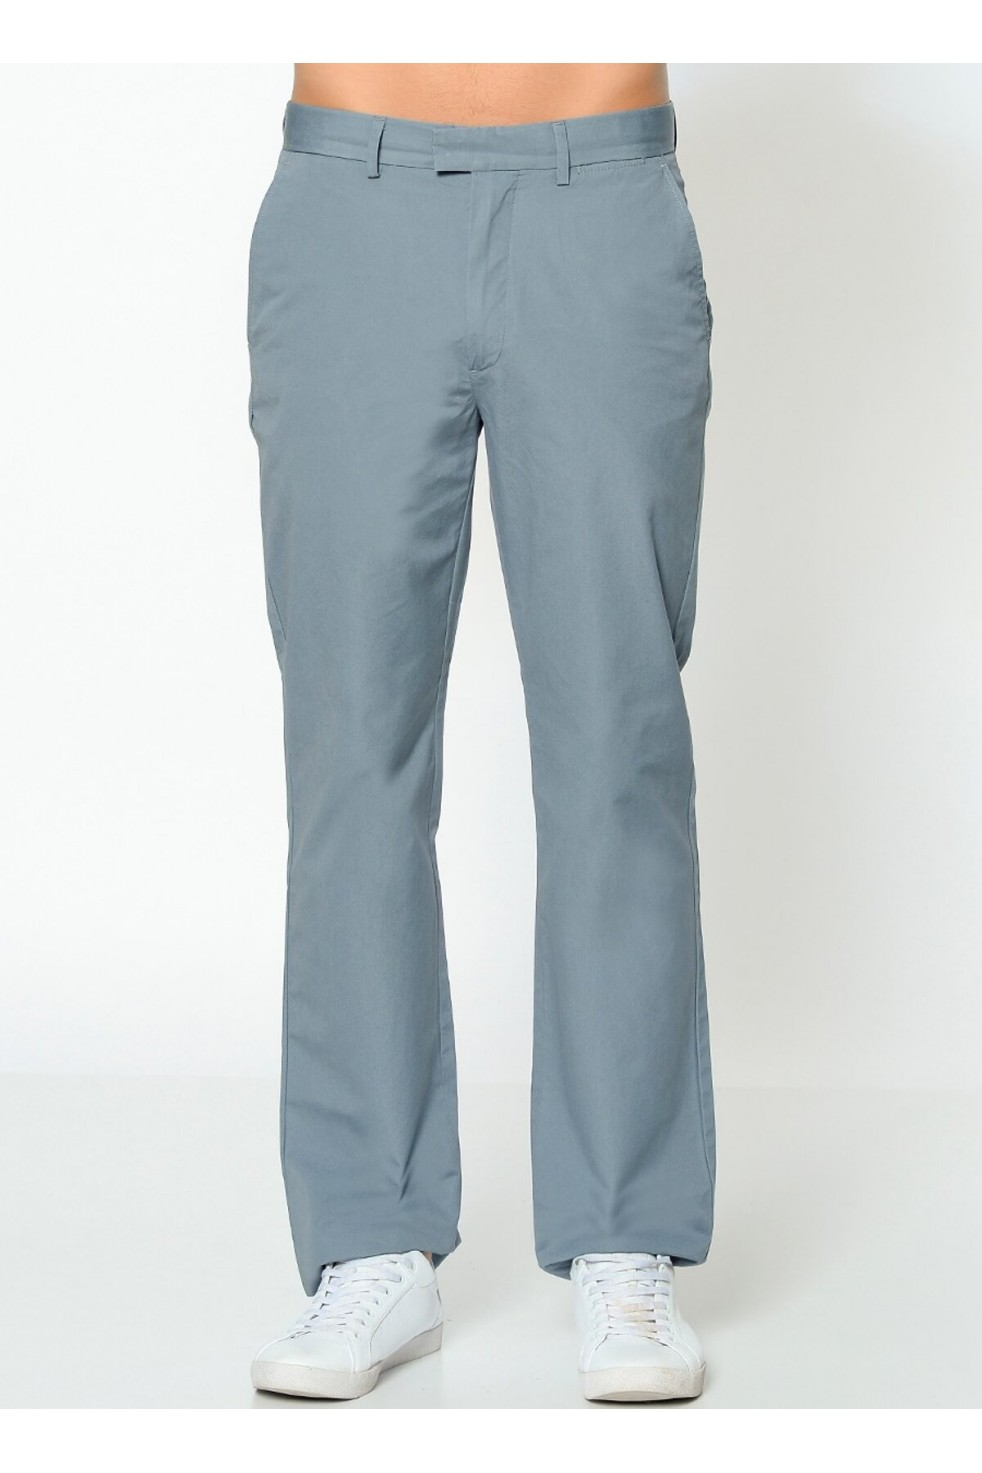 Dockers-Erkek-Pantolon-D1-Slim-Fit-40459-0047